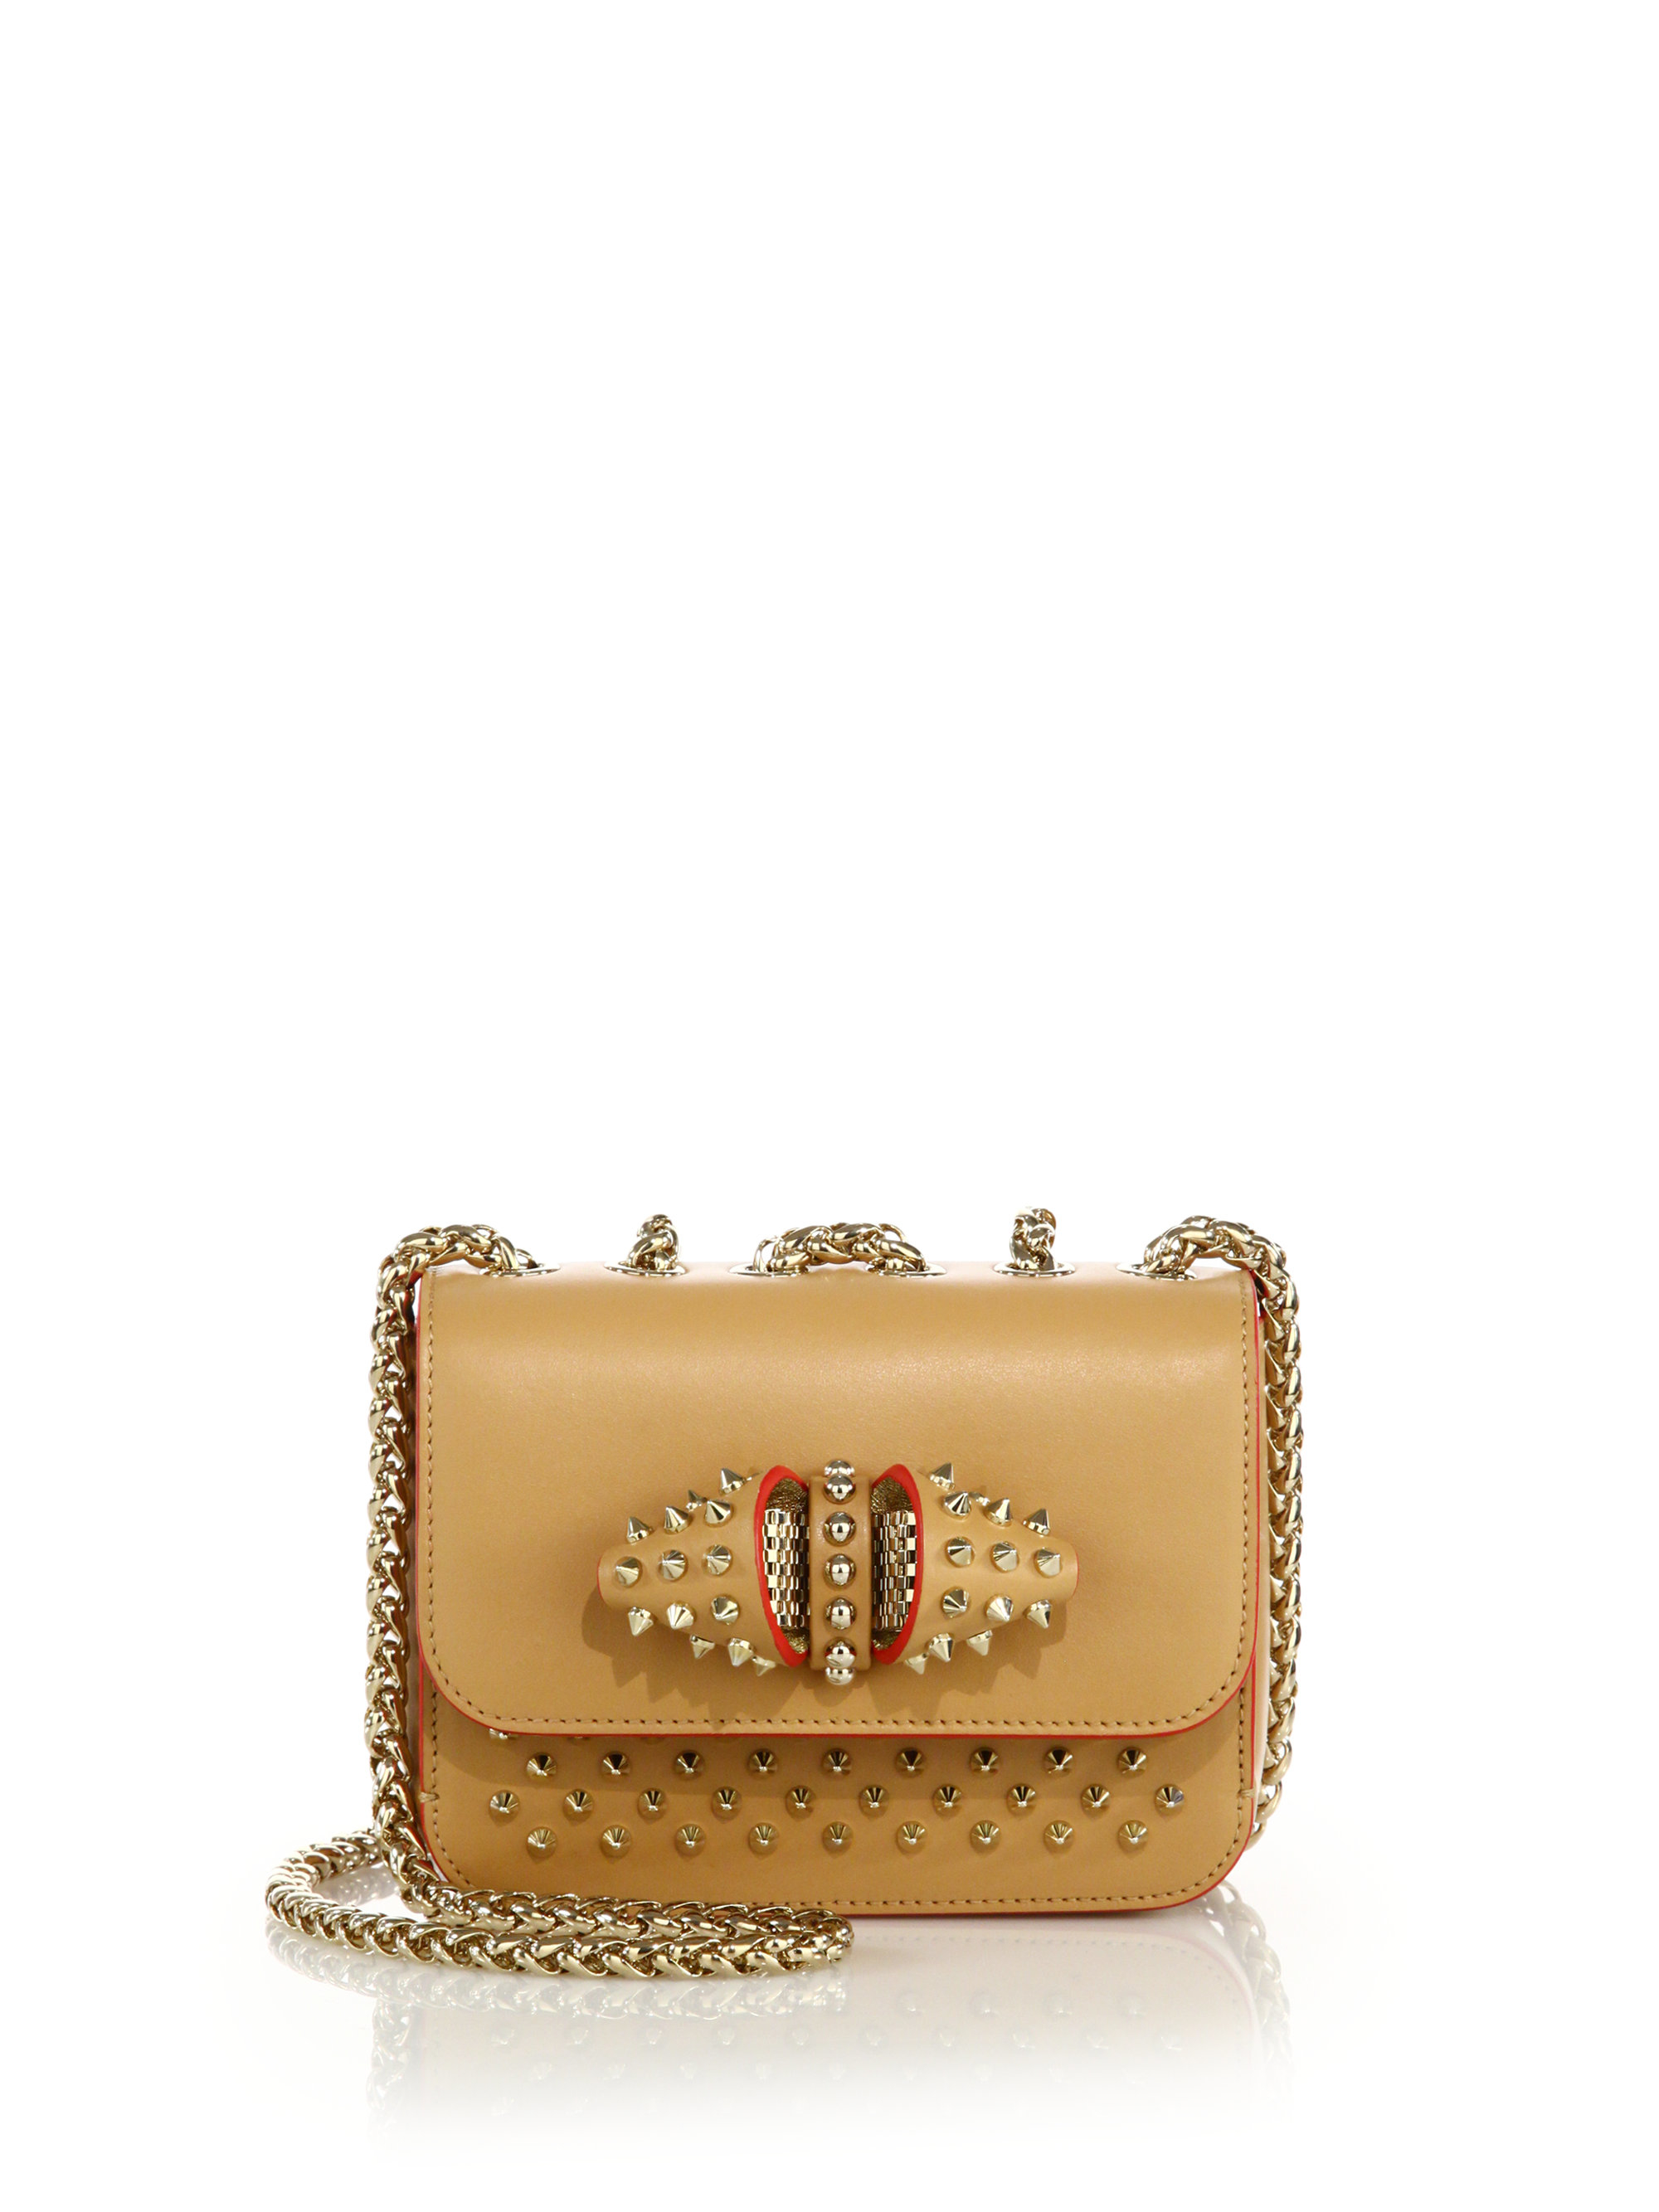 56f4b8cdef0 Christian Louboutin Brown Sweet Charity Baby Studded Leather Crossbody Bag